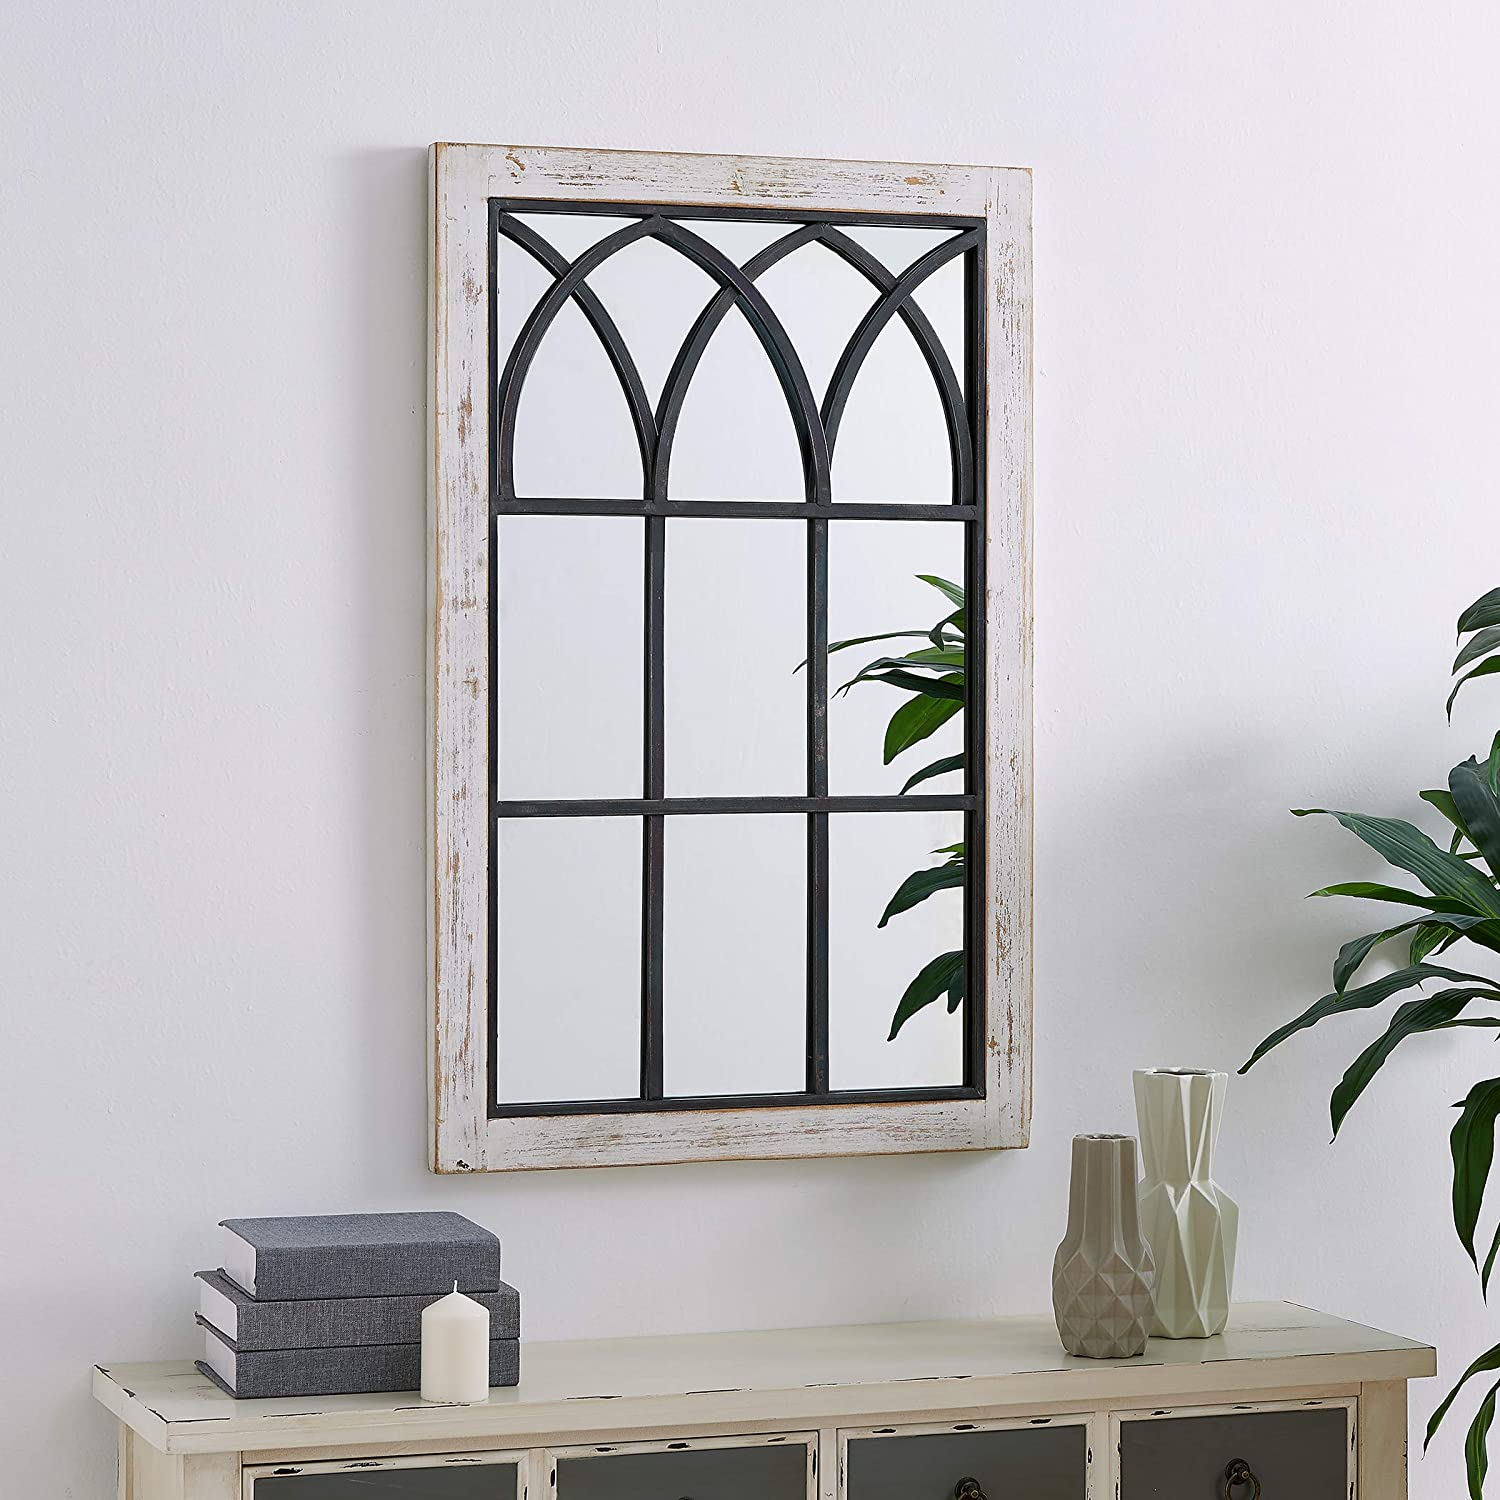 Amazon Com Firstime Co Vista Arched Window Accent Wall Mirror 37 5 X 24 Distressed White Furniture Decor